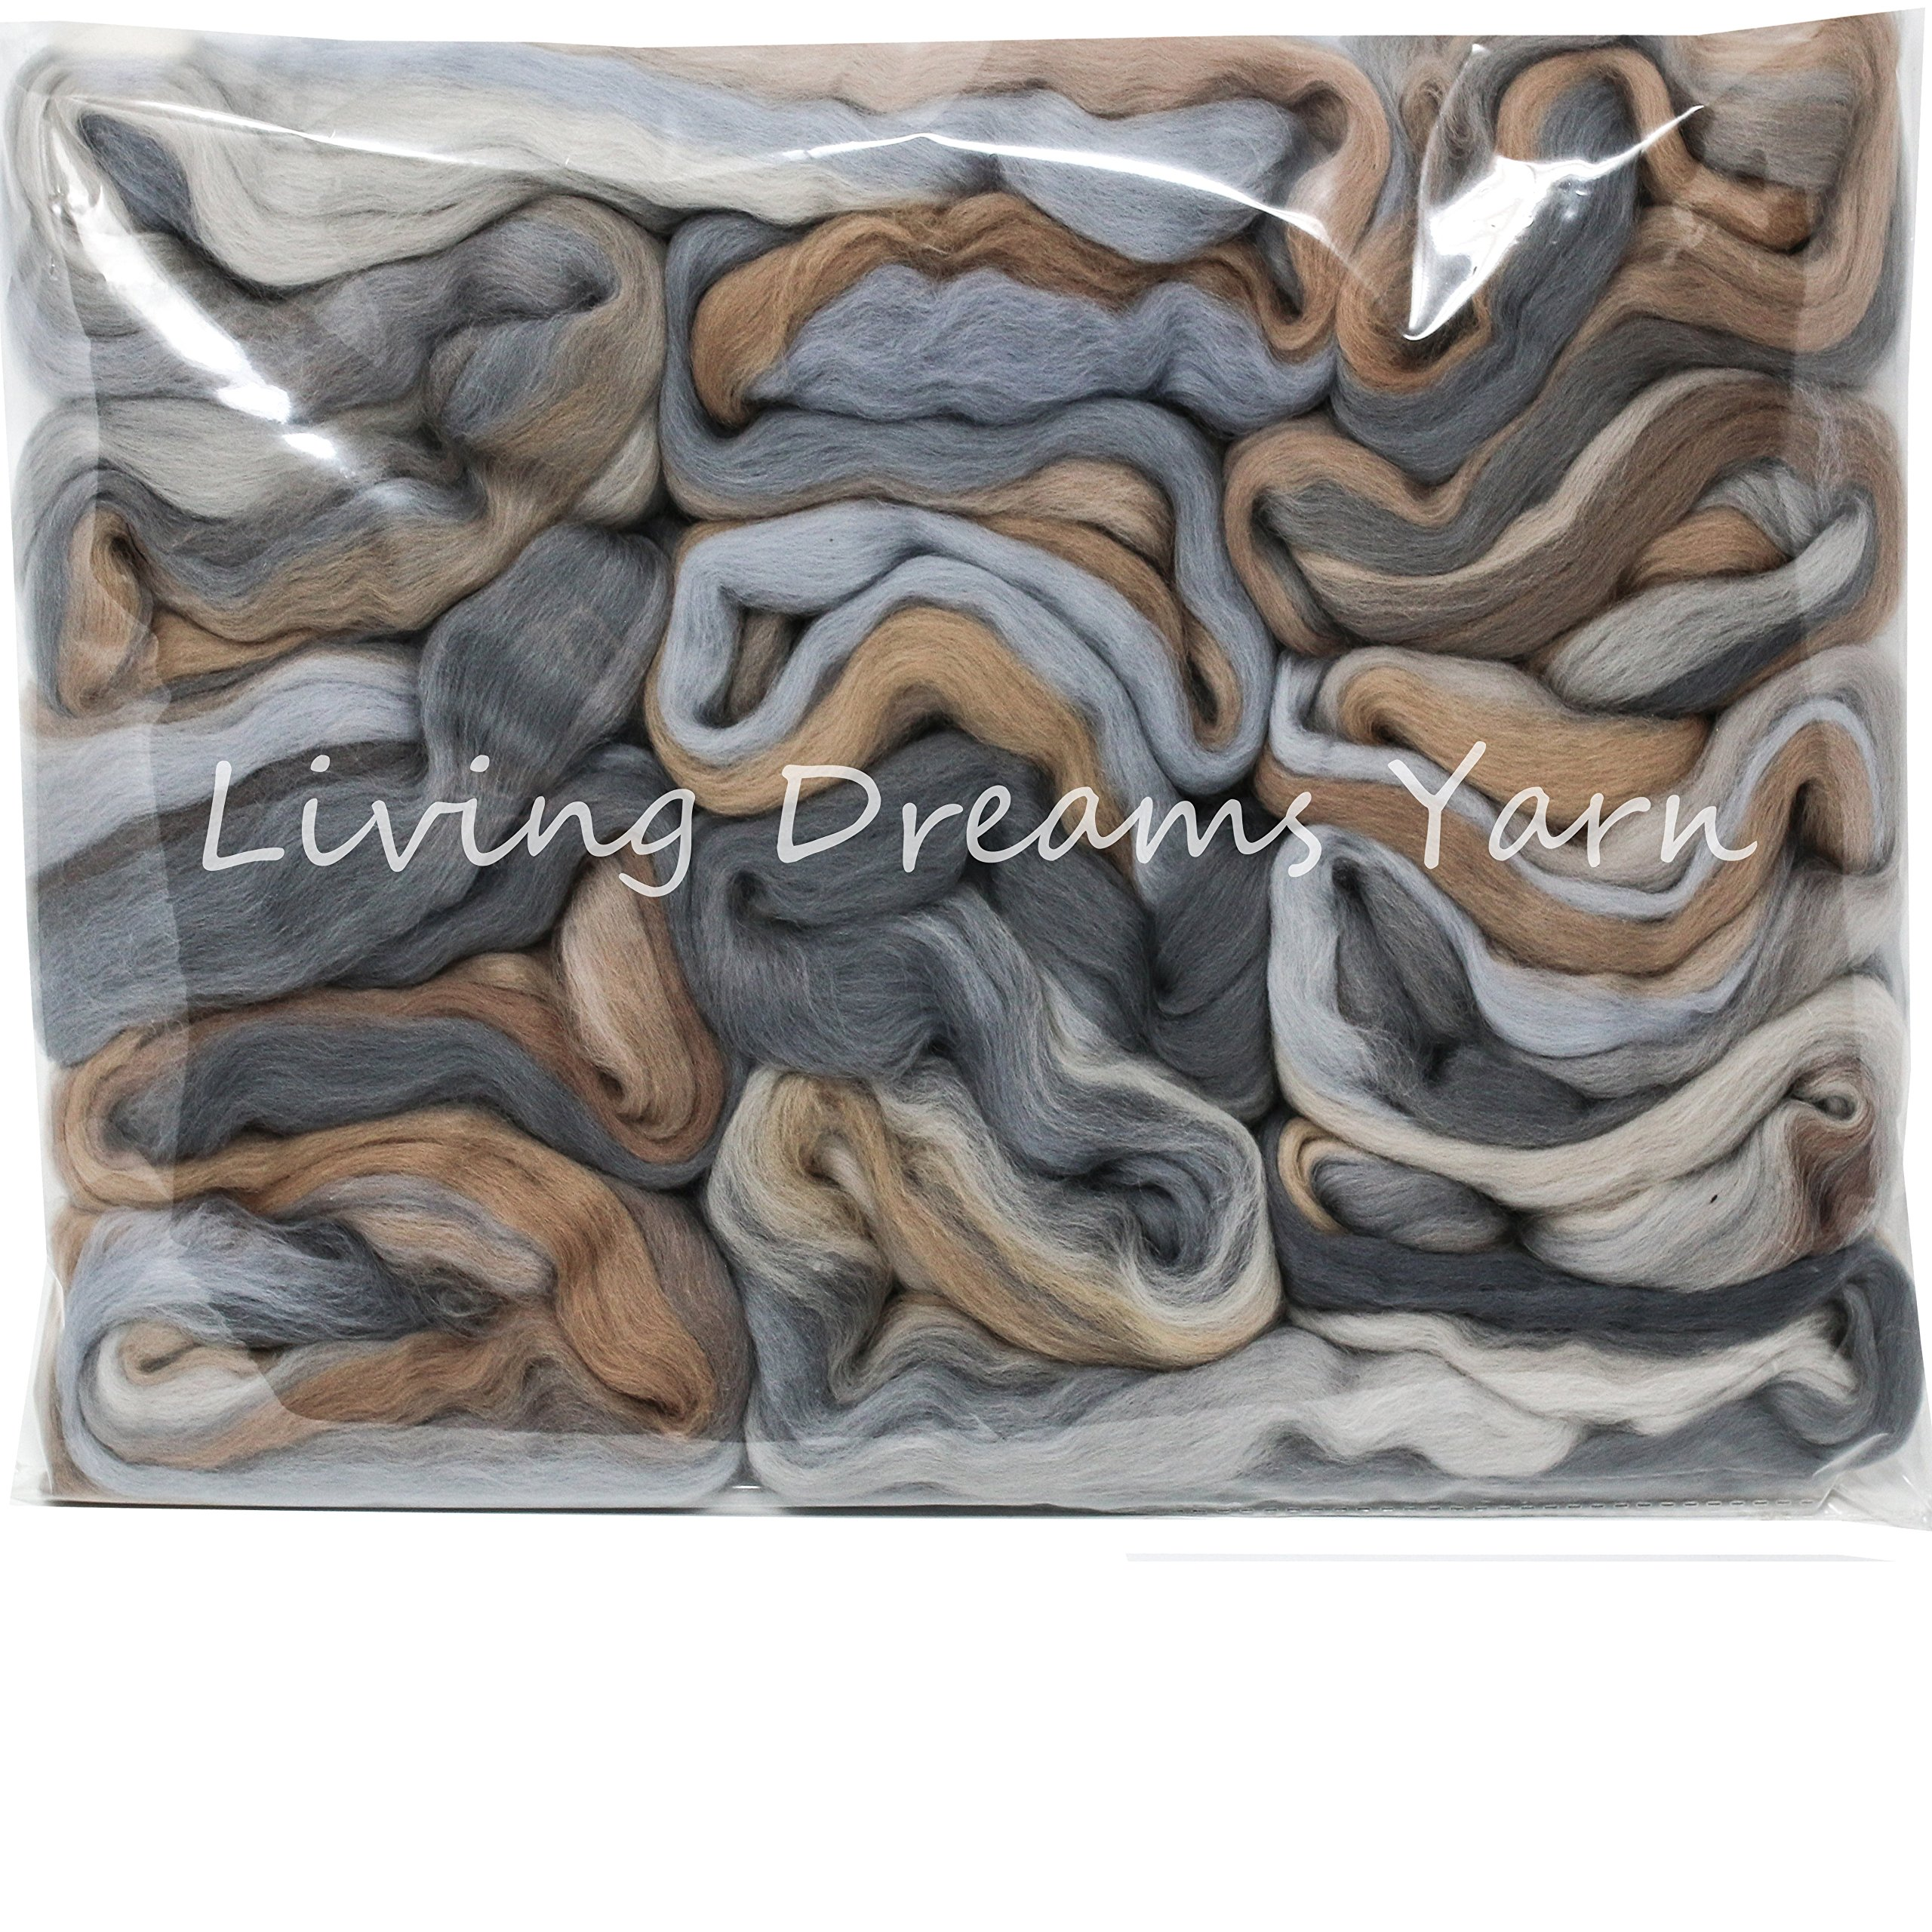 Superfine Merino Fiber for Spinning & Felting. Super Soft Combed Top Color Blend. Nomad by Living Dreams Yarn